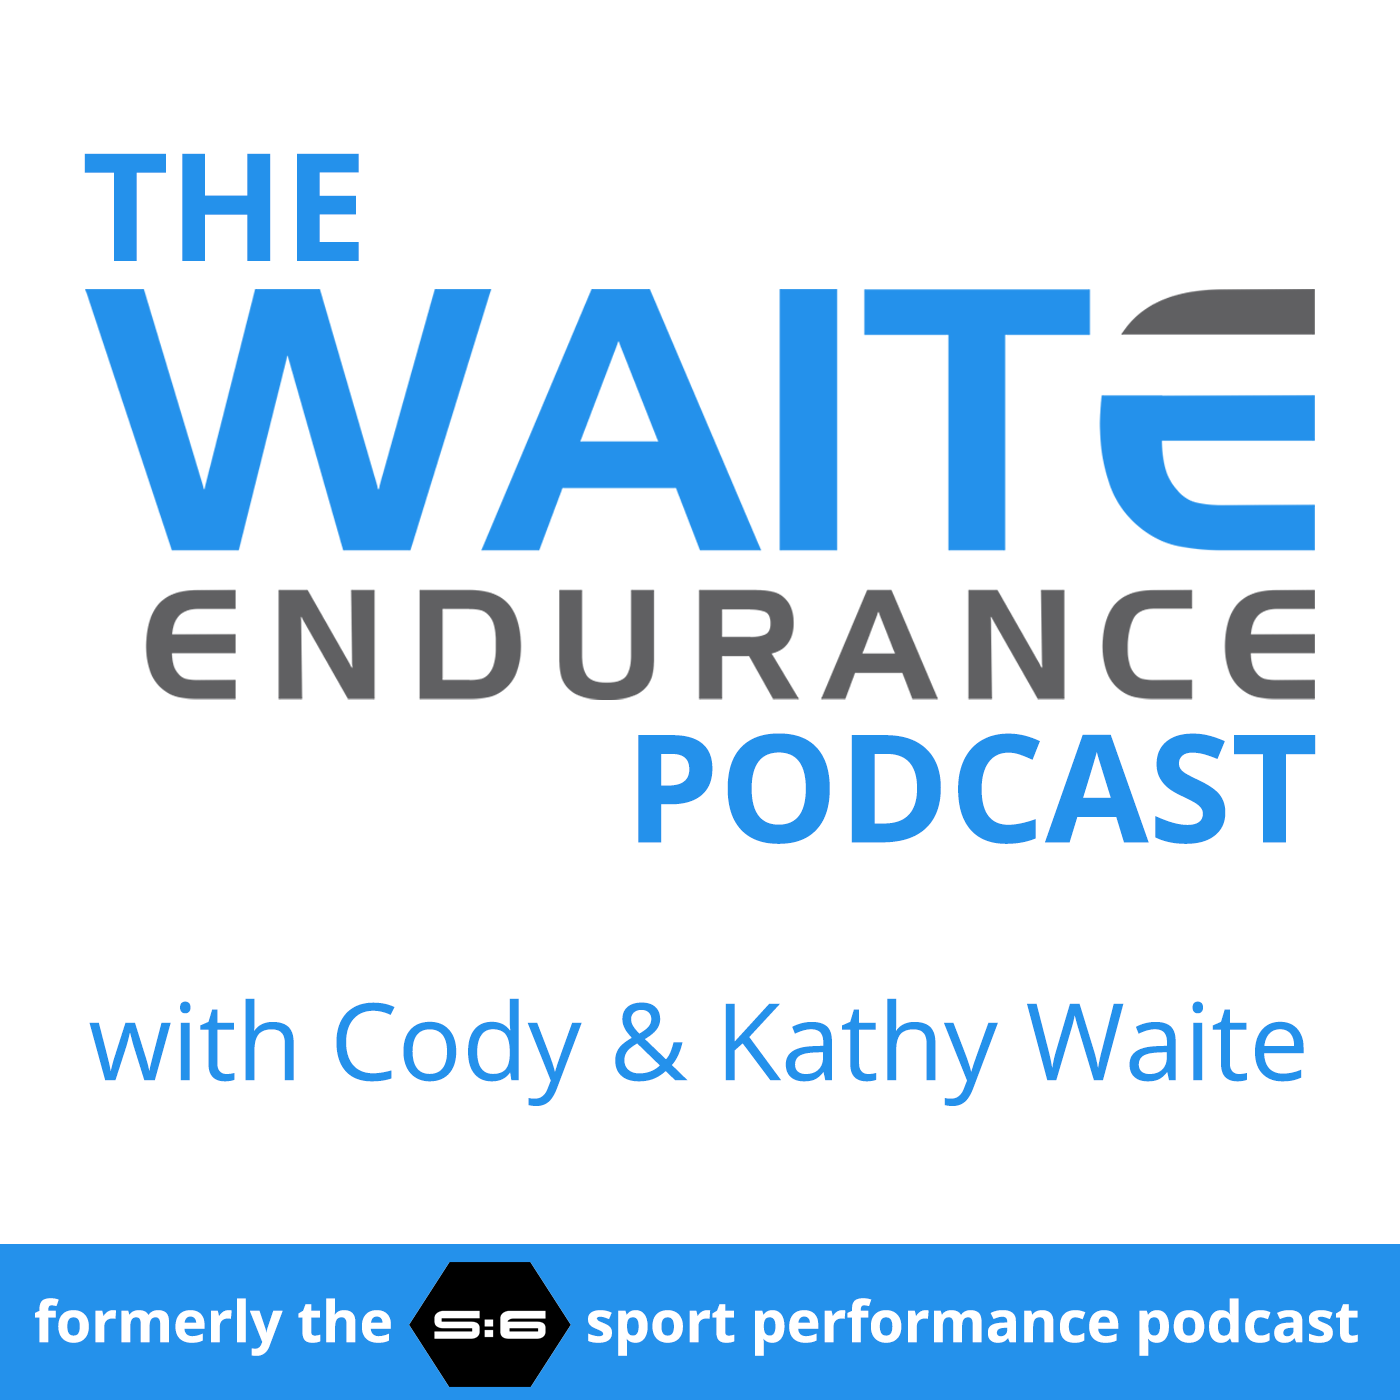 The Waite Endurance Podcast